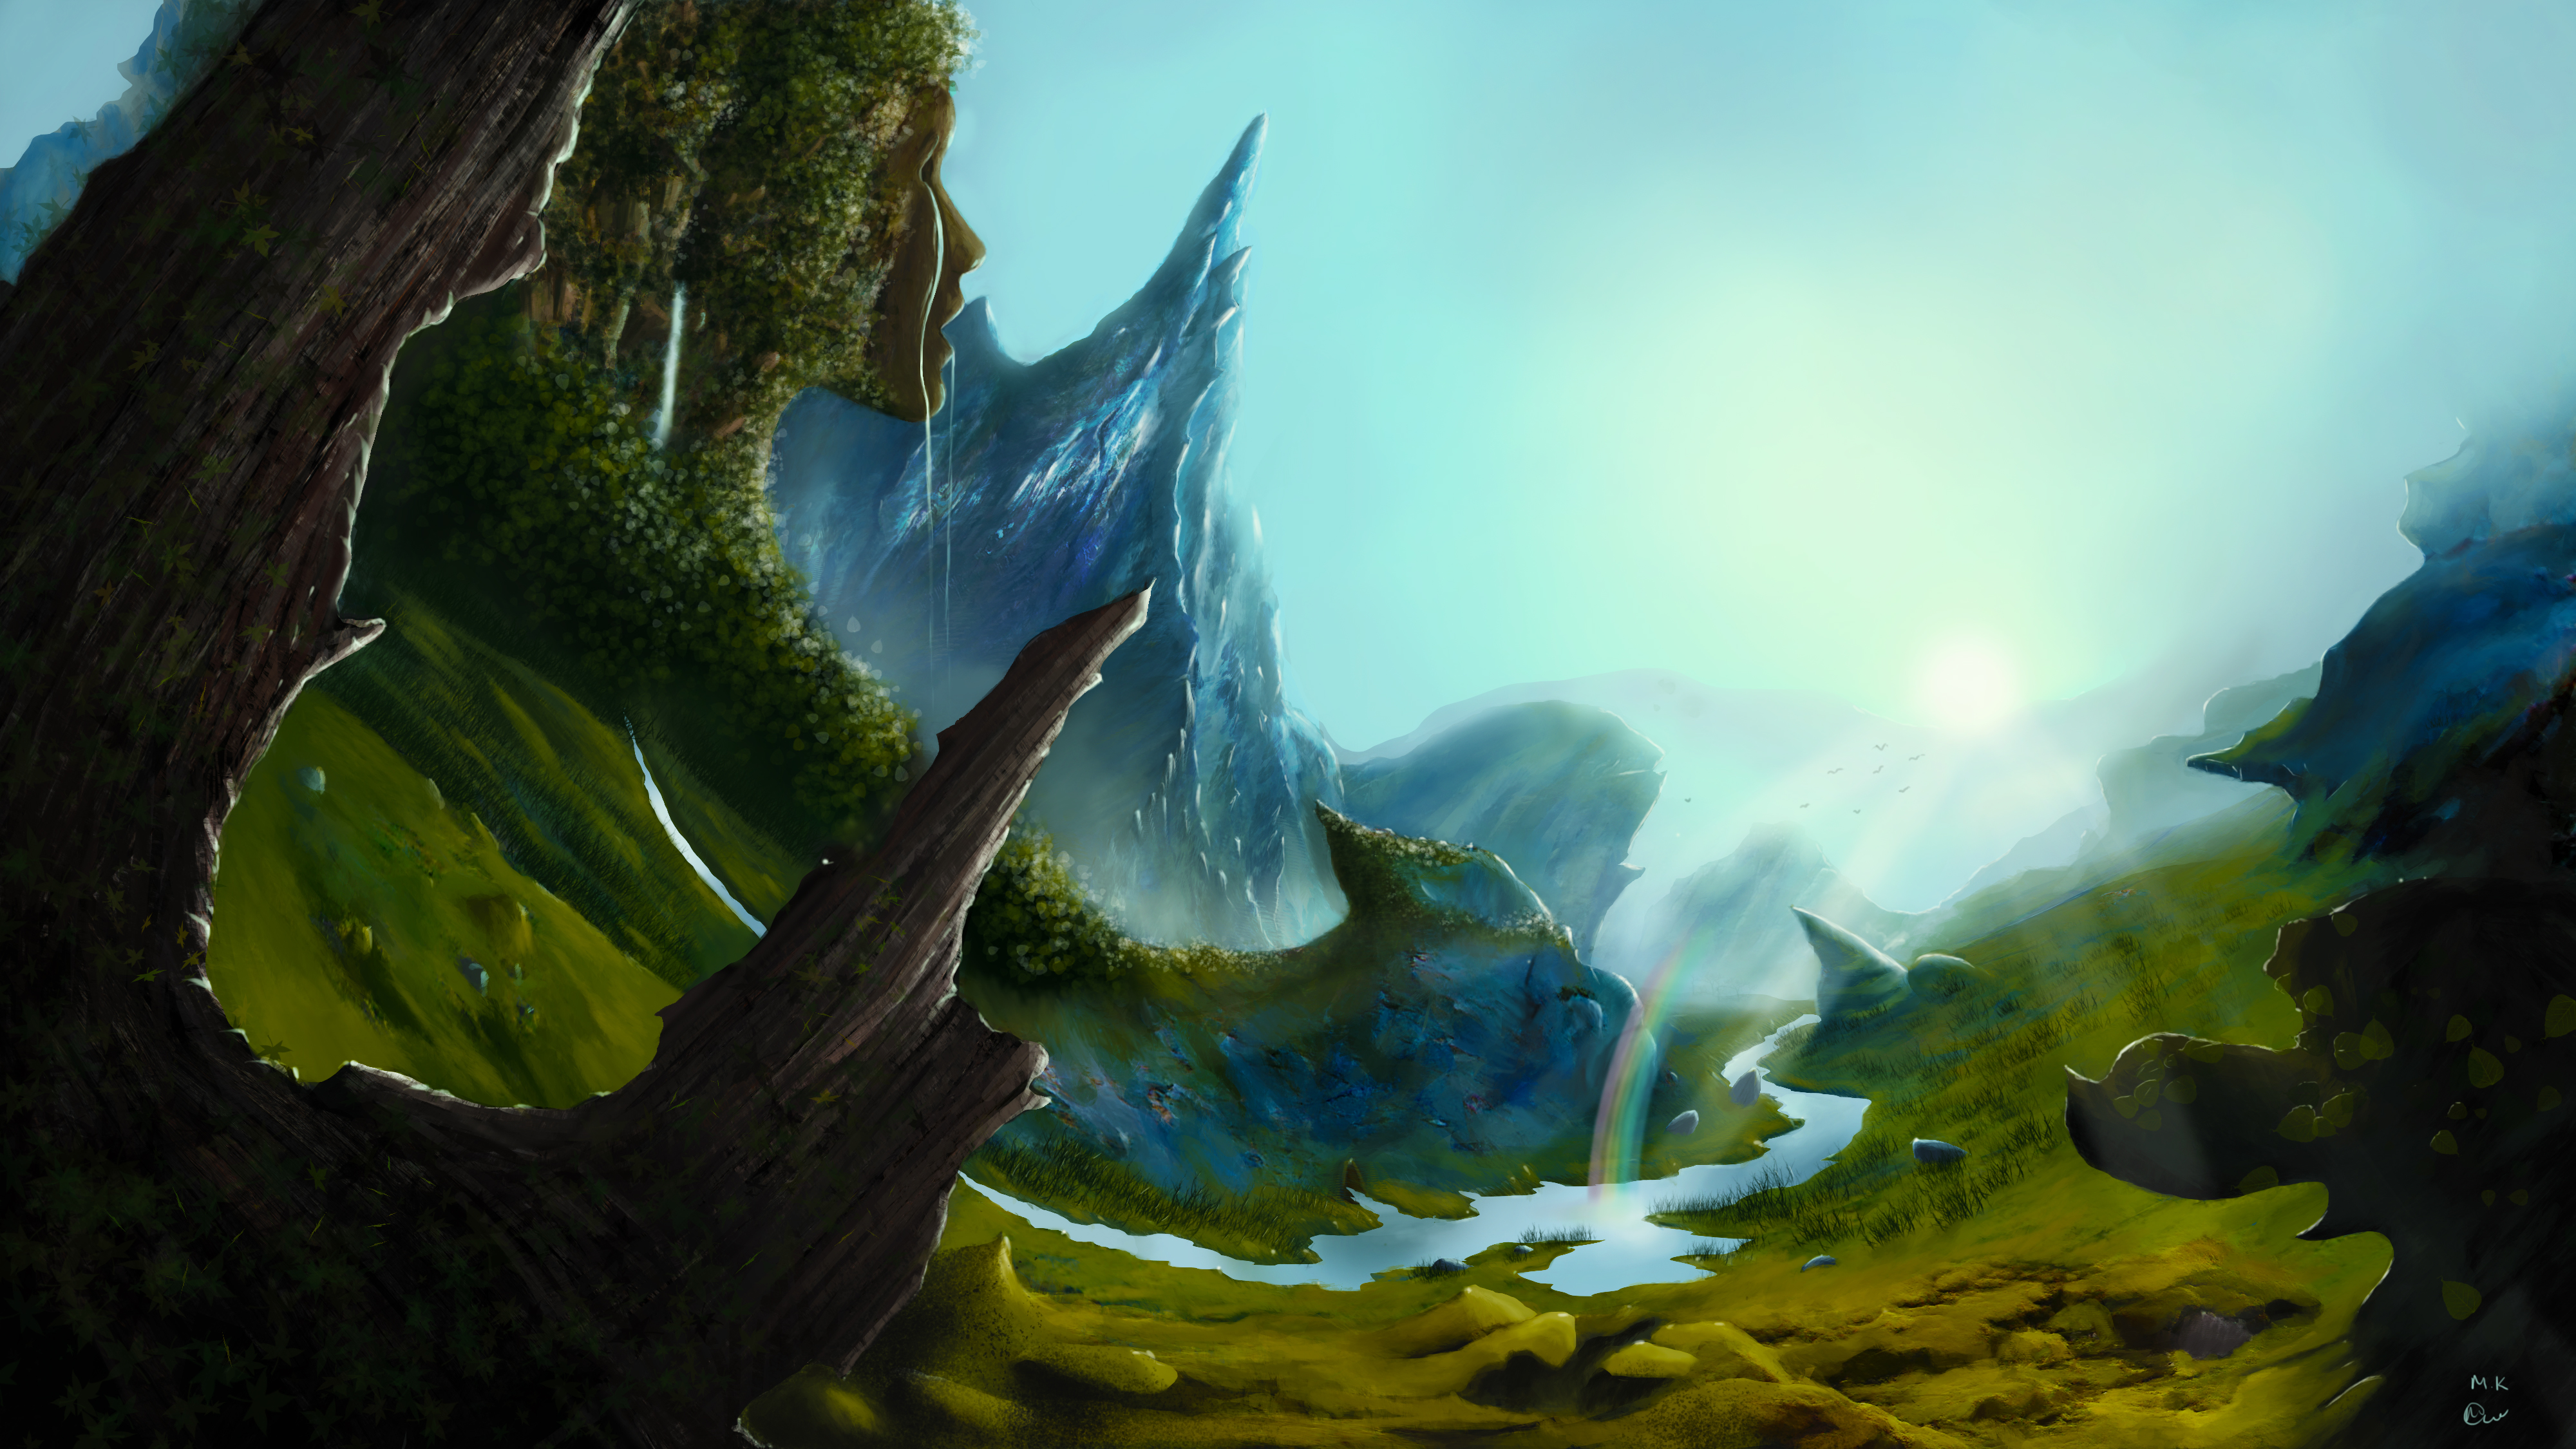 Fantasy landscape painting by Mantaskarciauskas on DeviantArt